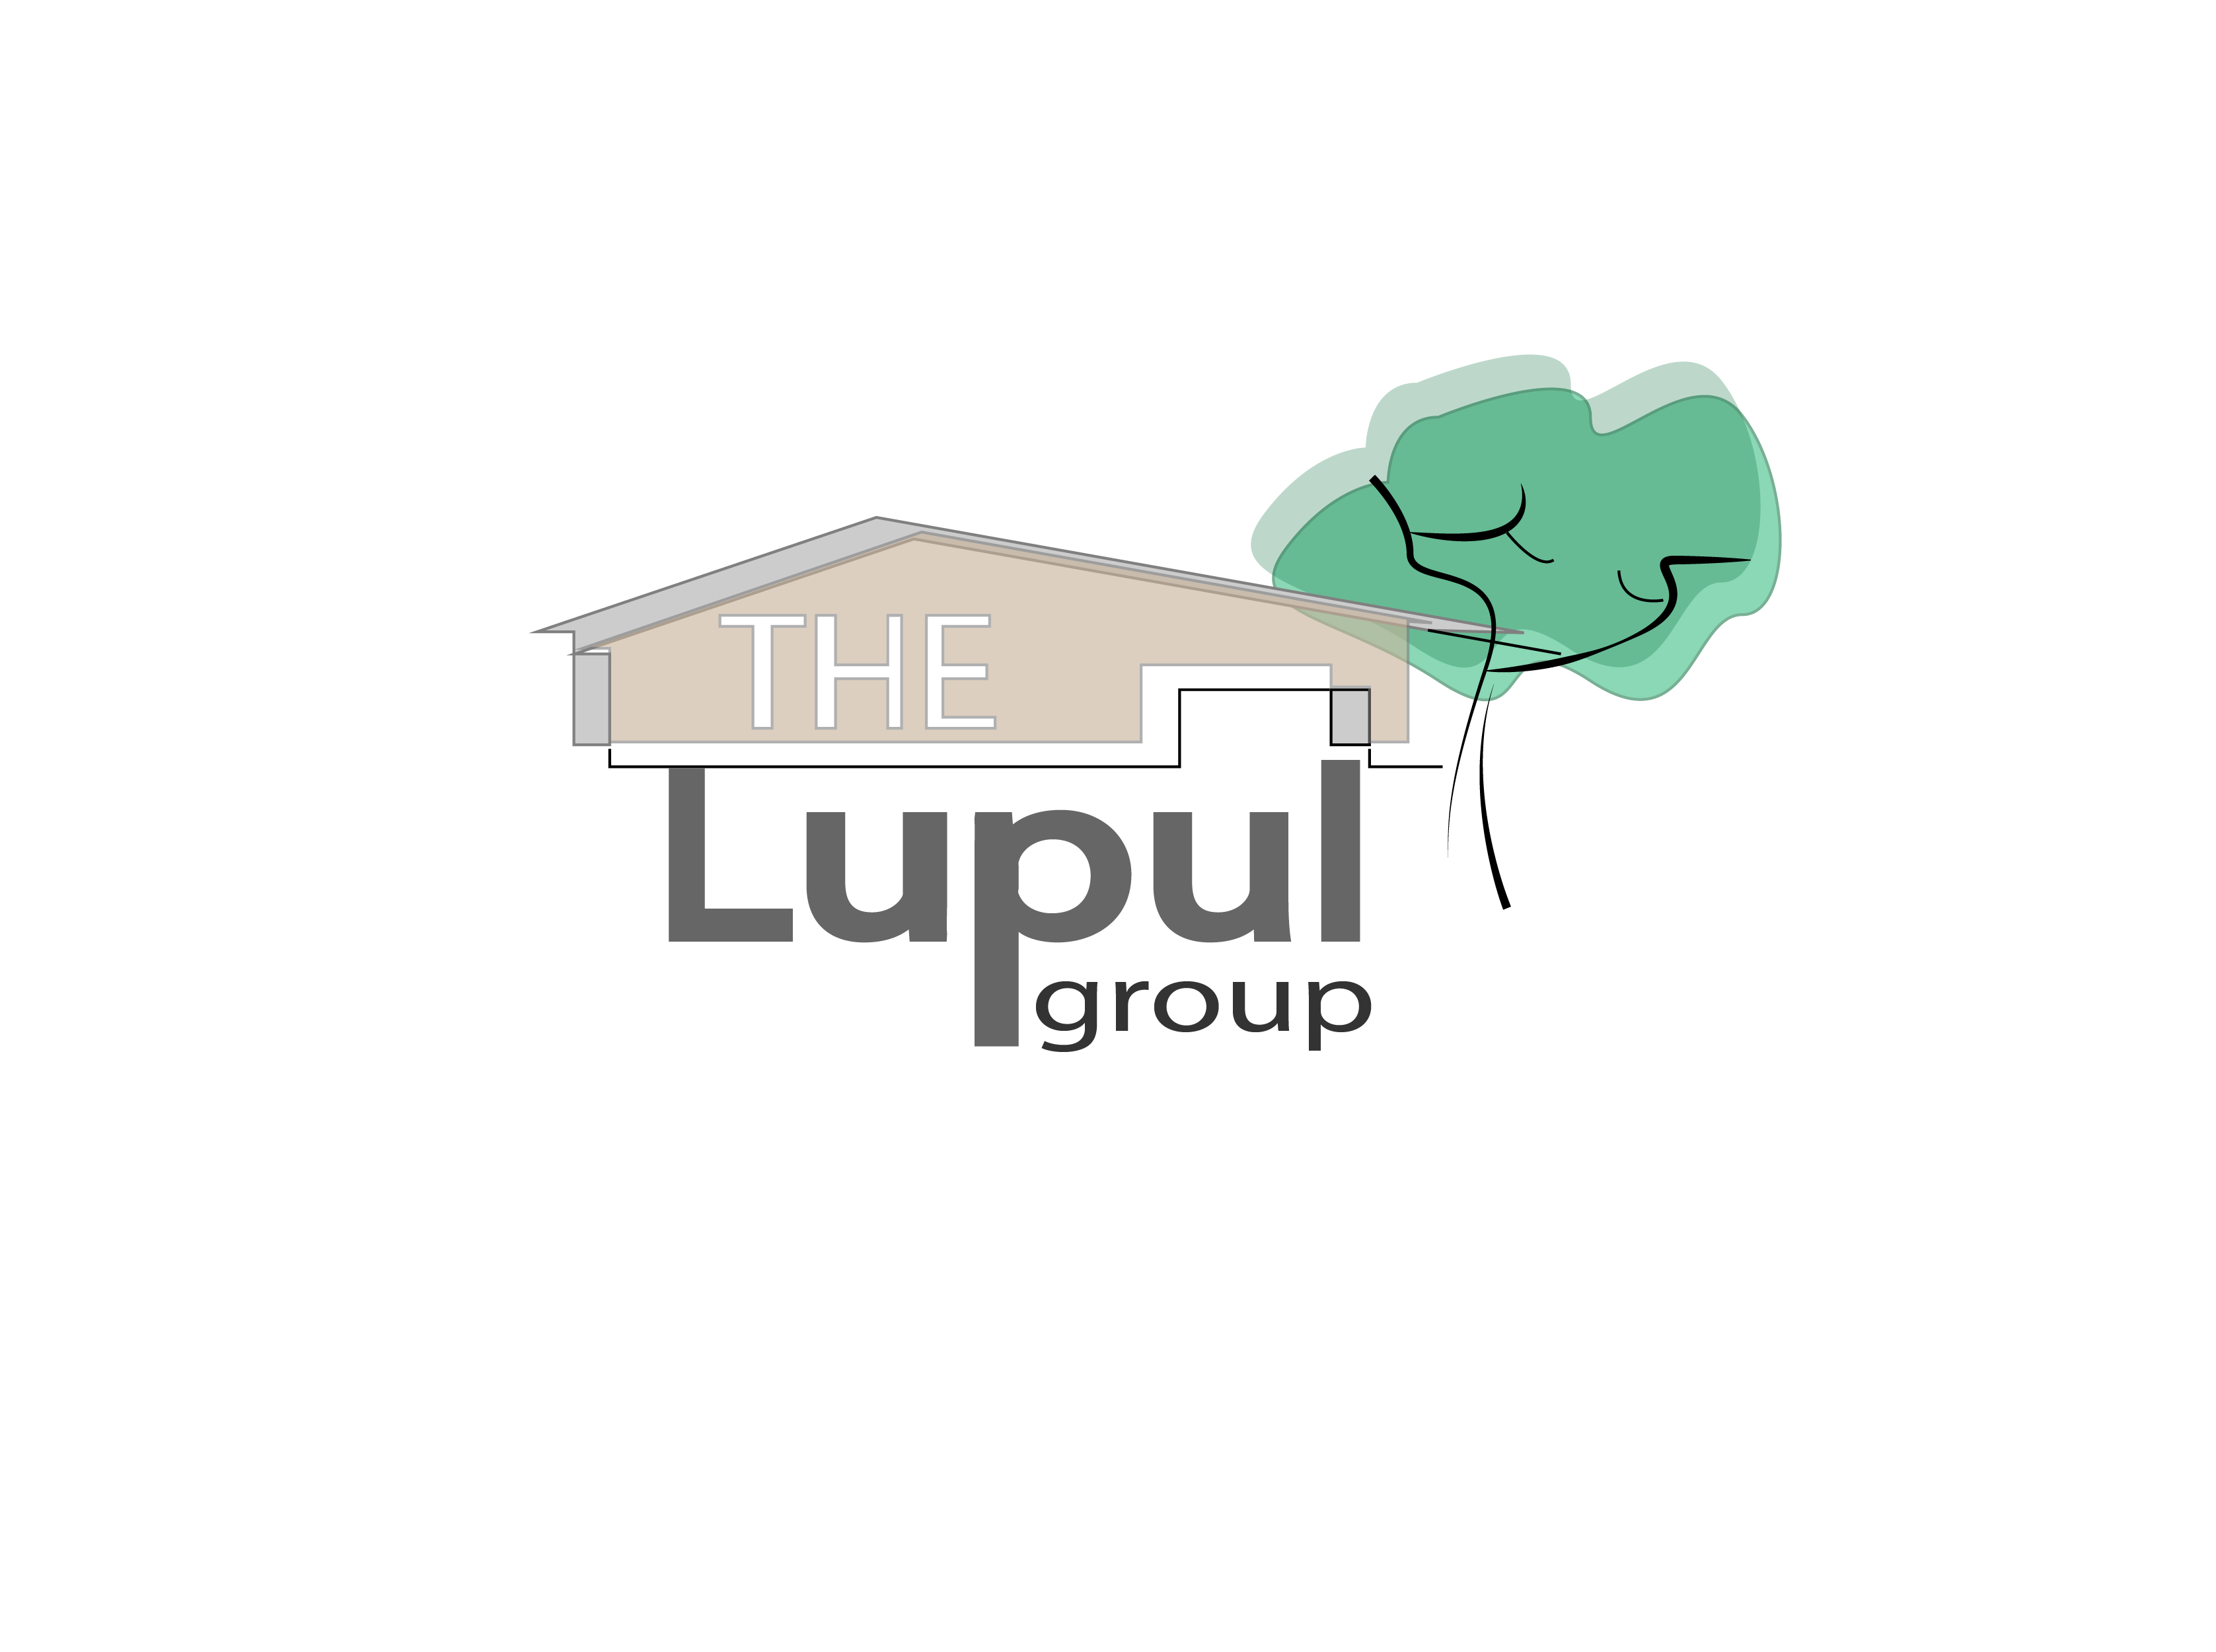 Logo Design by Roland Huse - Entry No. 10 in the Logo Design Contest Logo Design for: The Lupul Group.